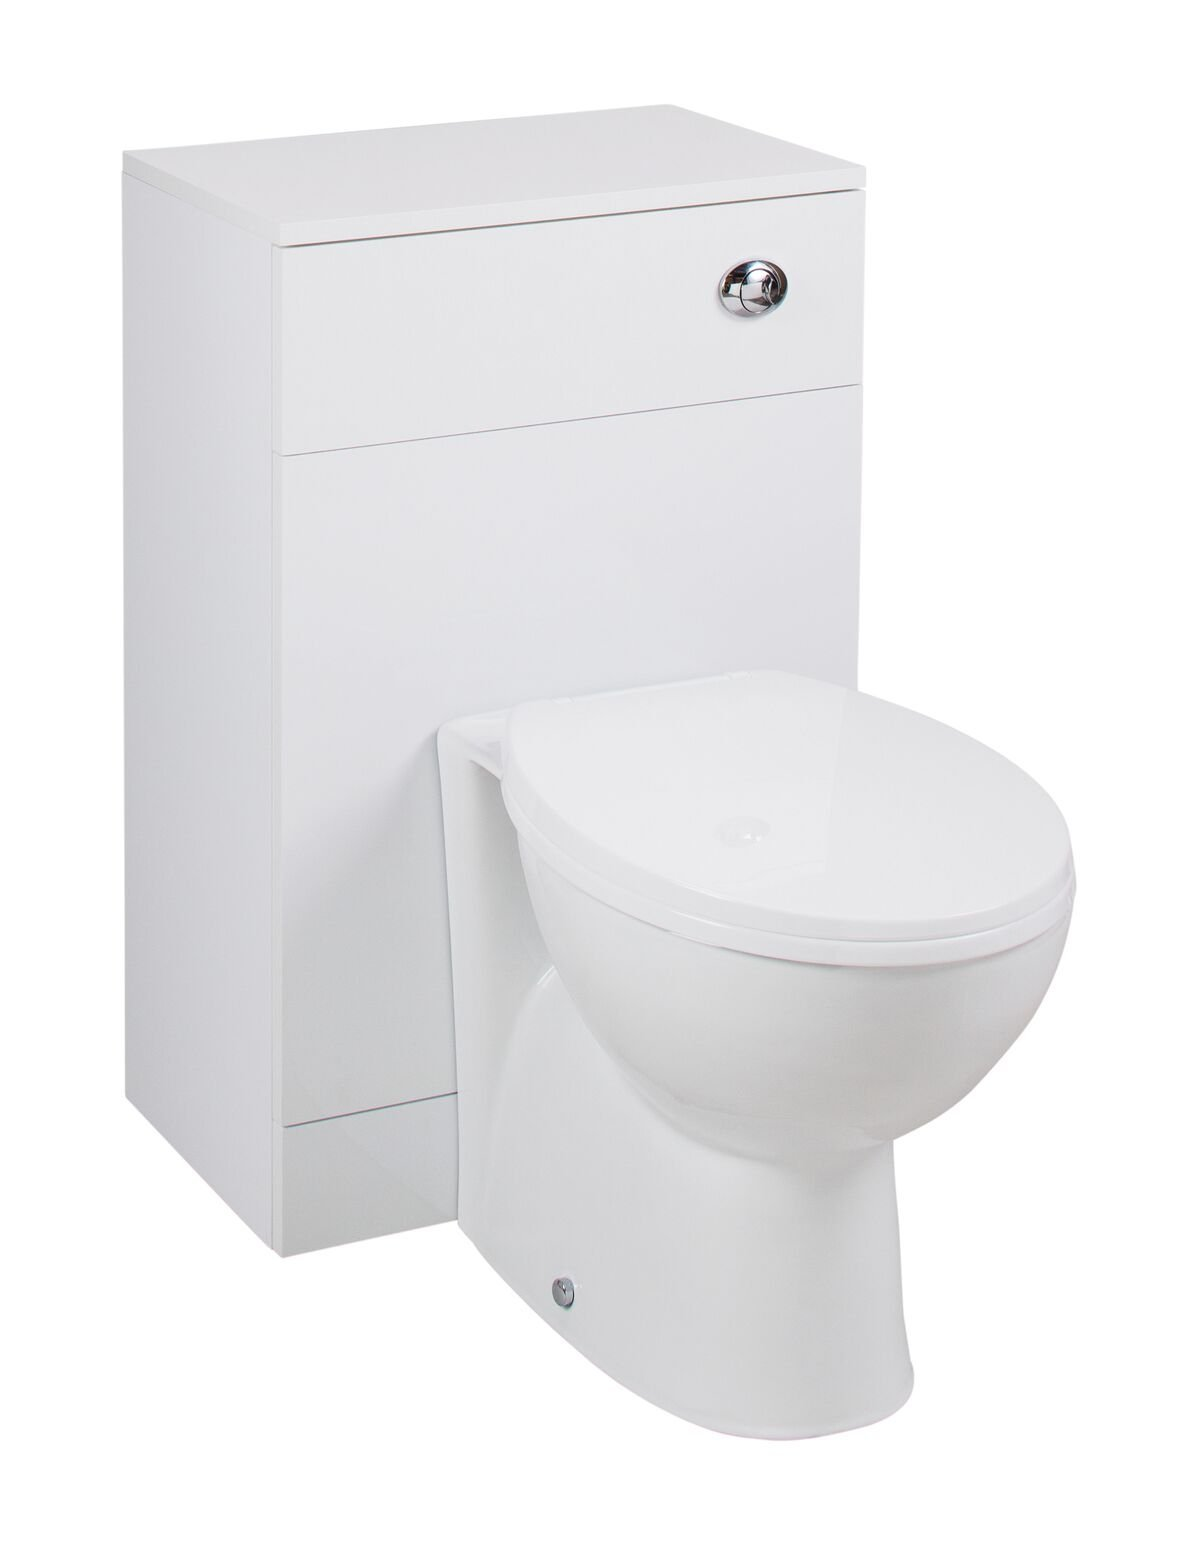 Cassellie Kass WC Unit with Churwell Back to Wall Pan & Seat - 500mm Wide x 820mm Deep - White